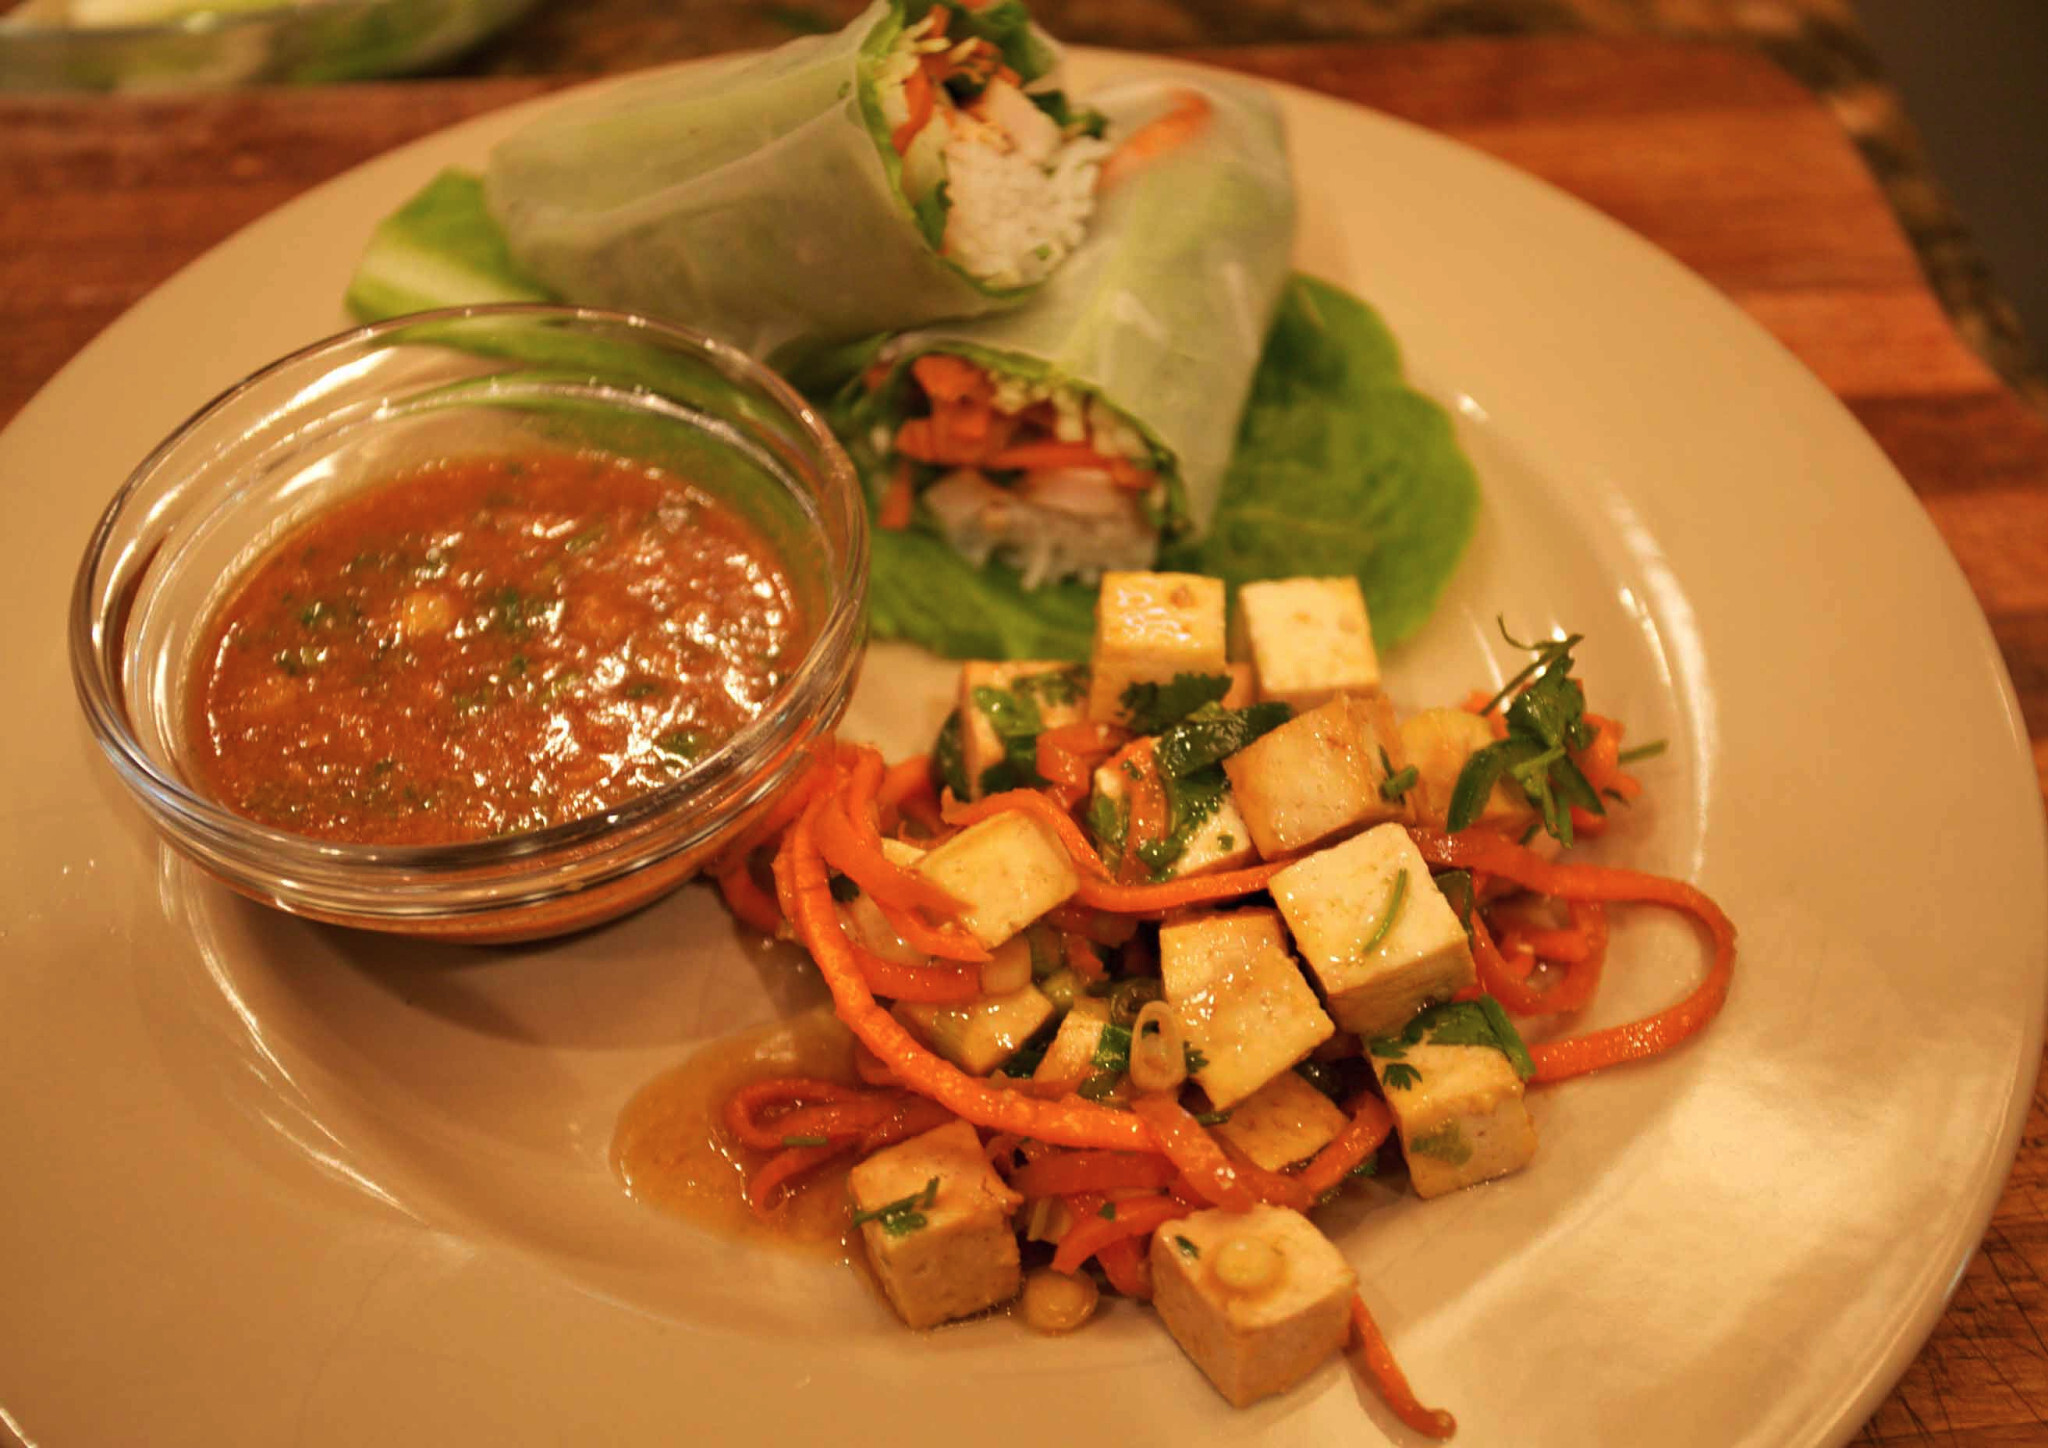 Tofu Salad and Asian Spring Rolls